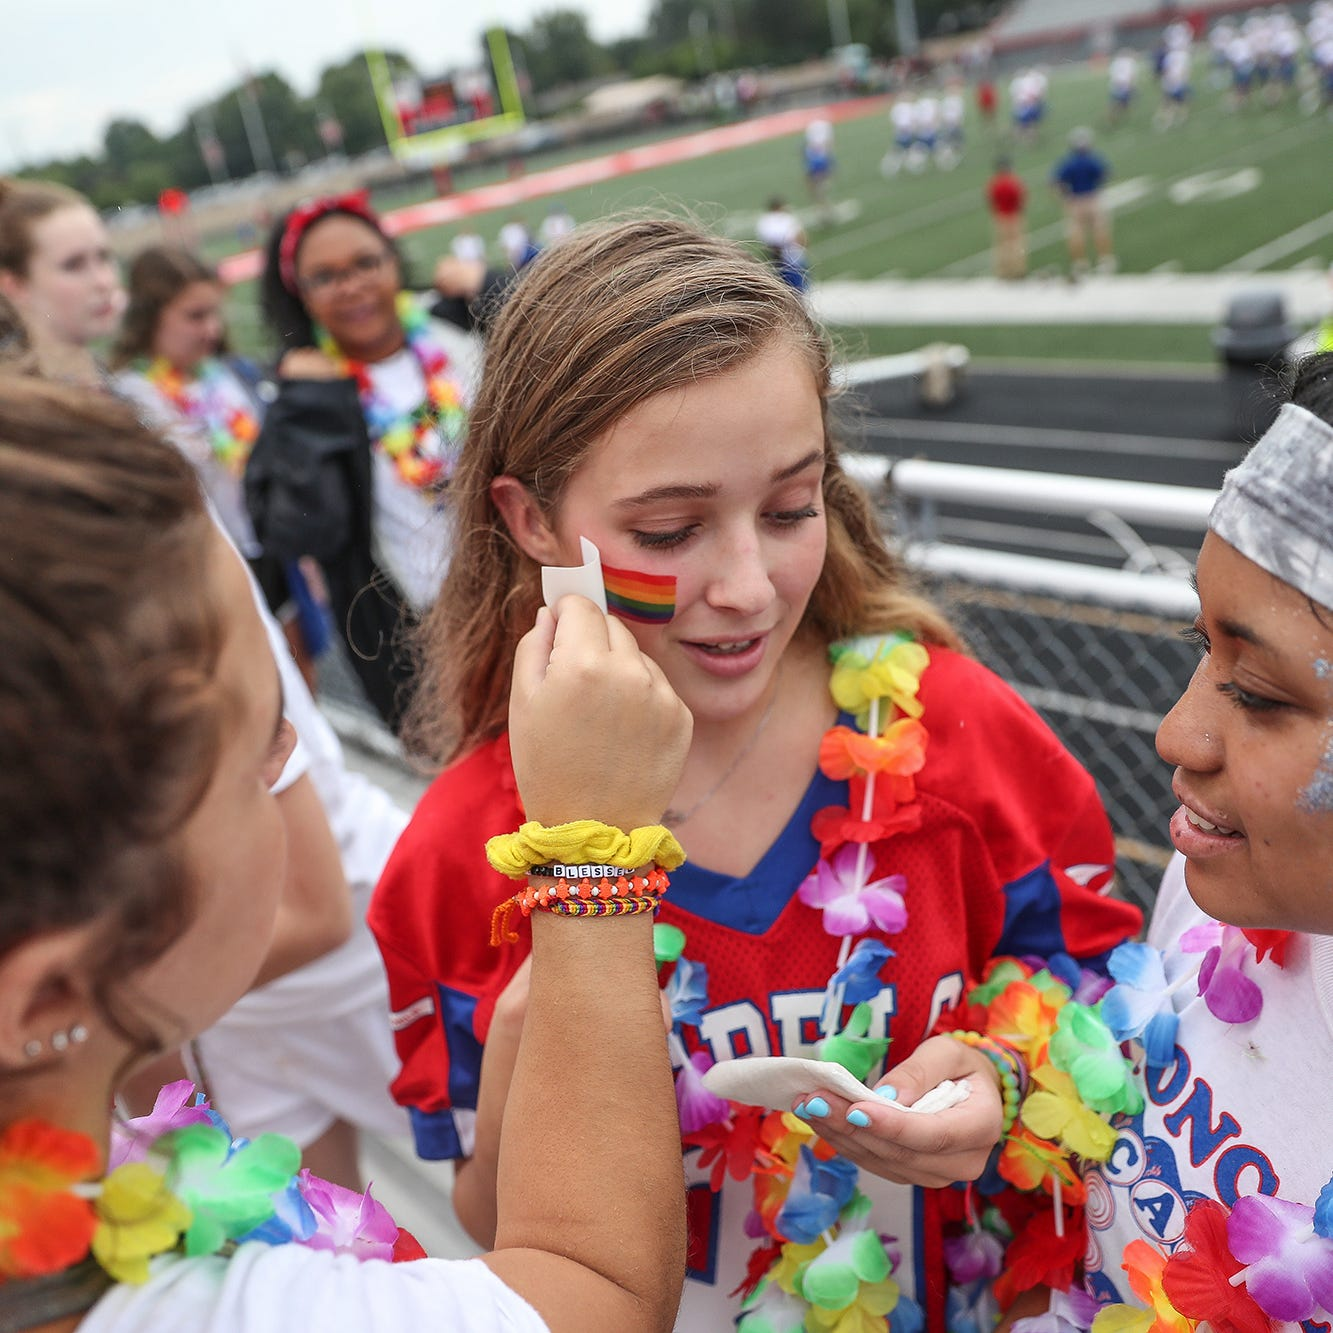 Roncalli, Southport students dot football stadium with rainbows in support of suspended counselor